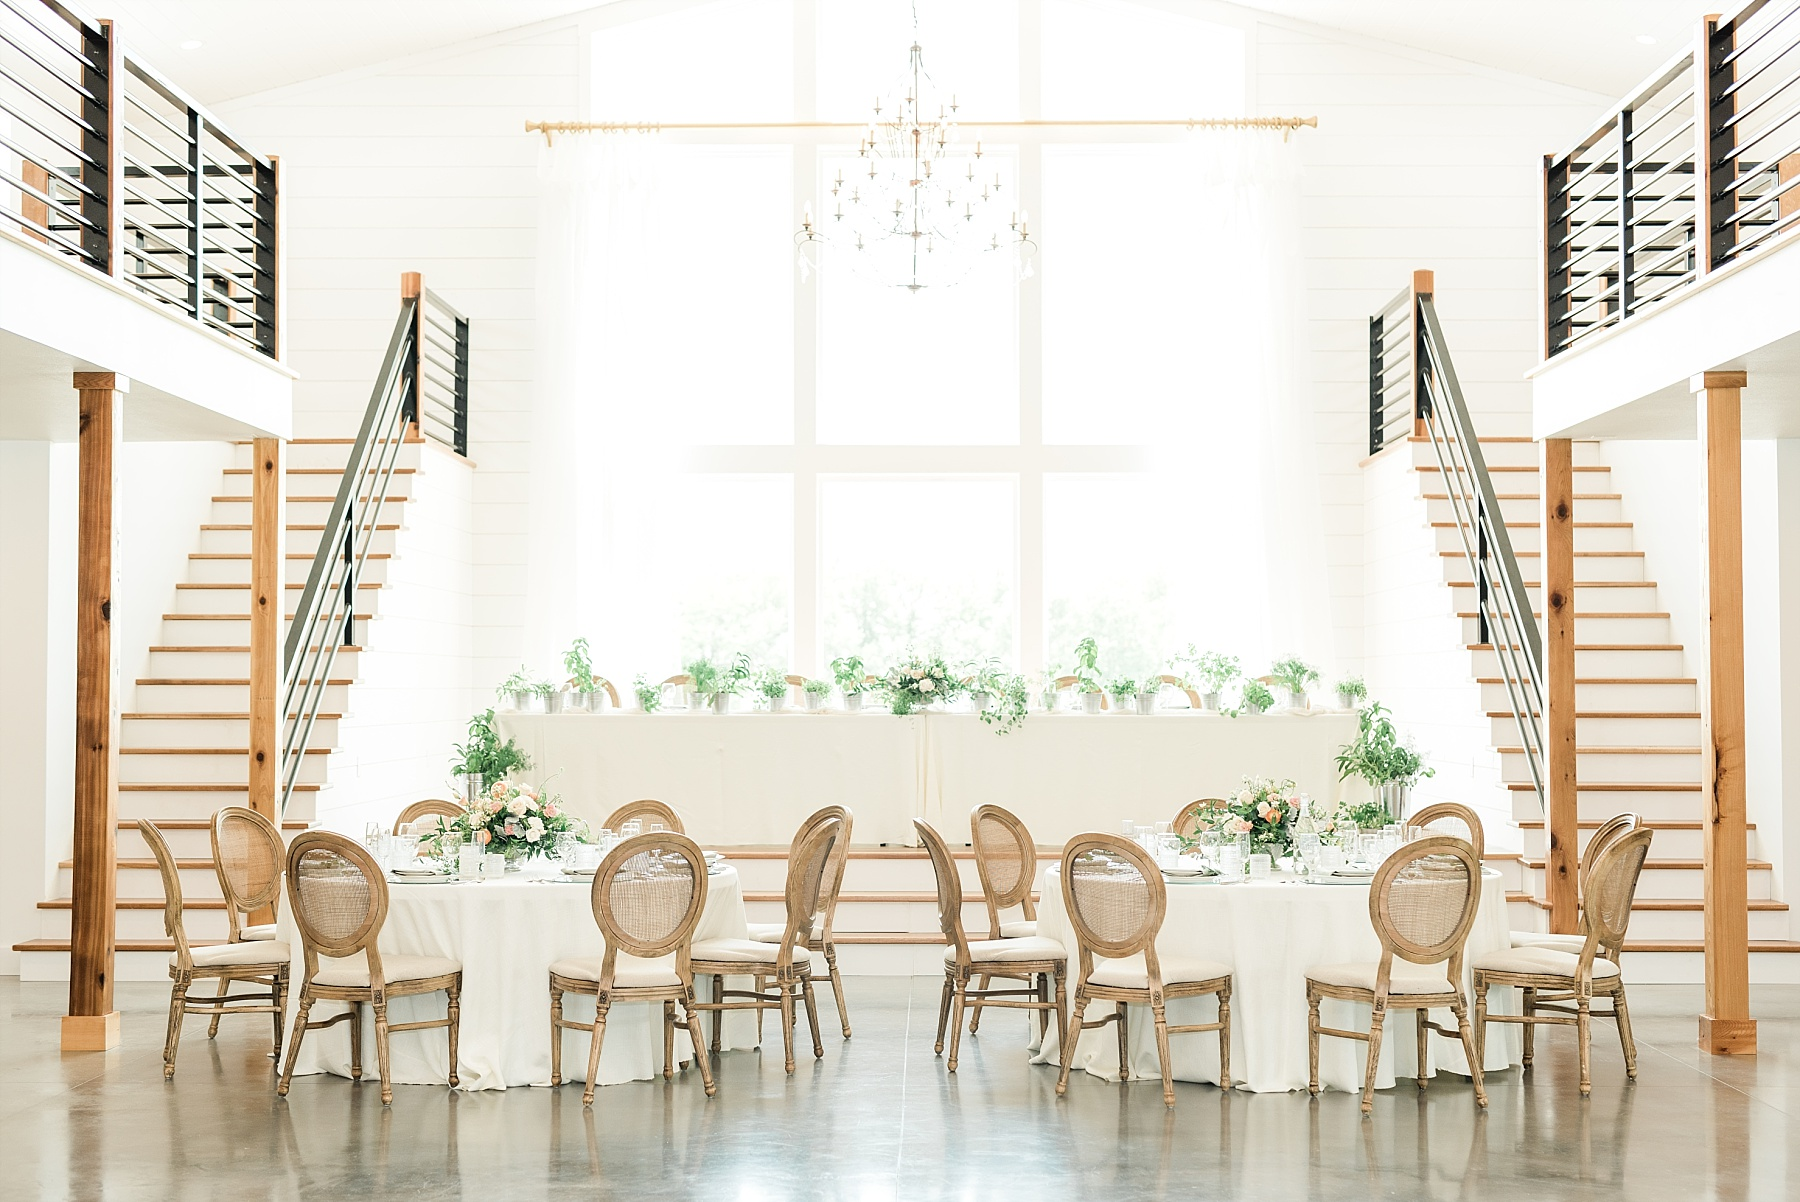 Textural Organic Wedding in All White Venue by Kelsi Kliethermes Wedding Photographer - Missouri, Midwest, and Destinations_0083.jpg